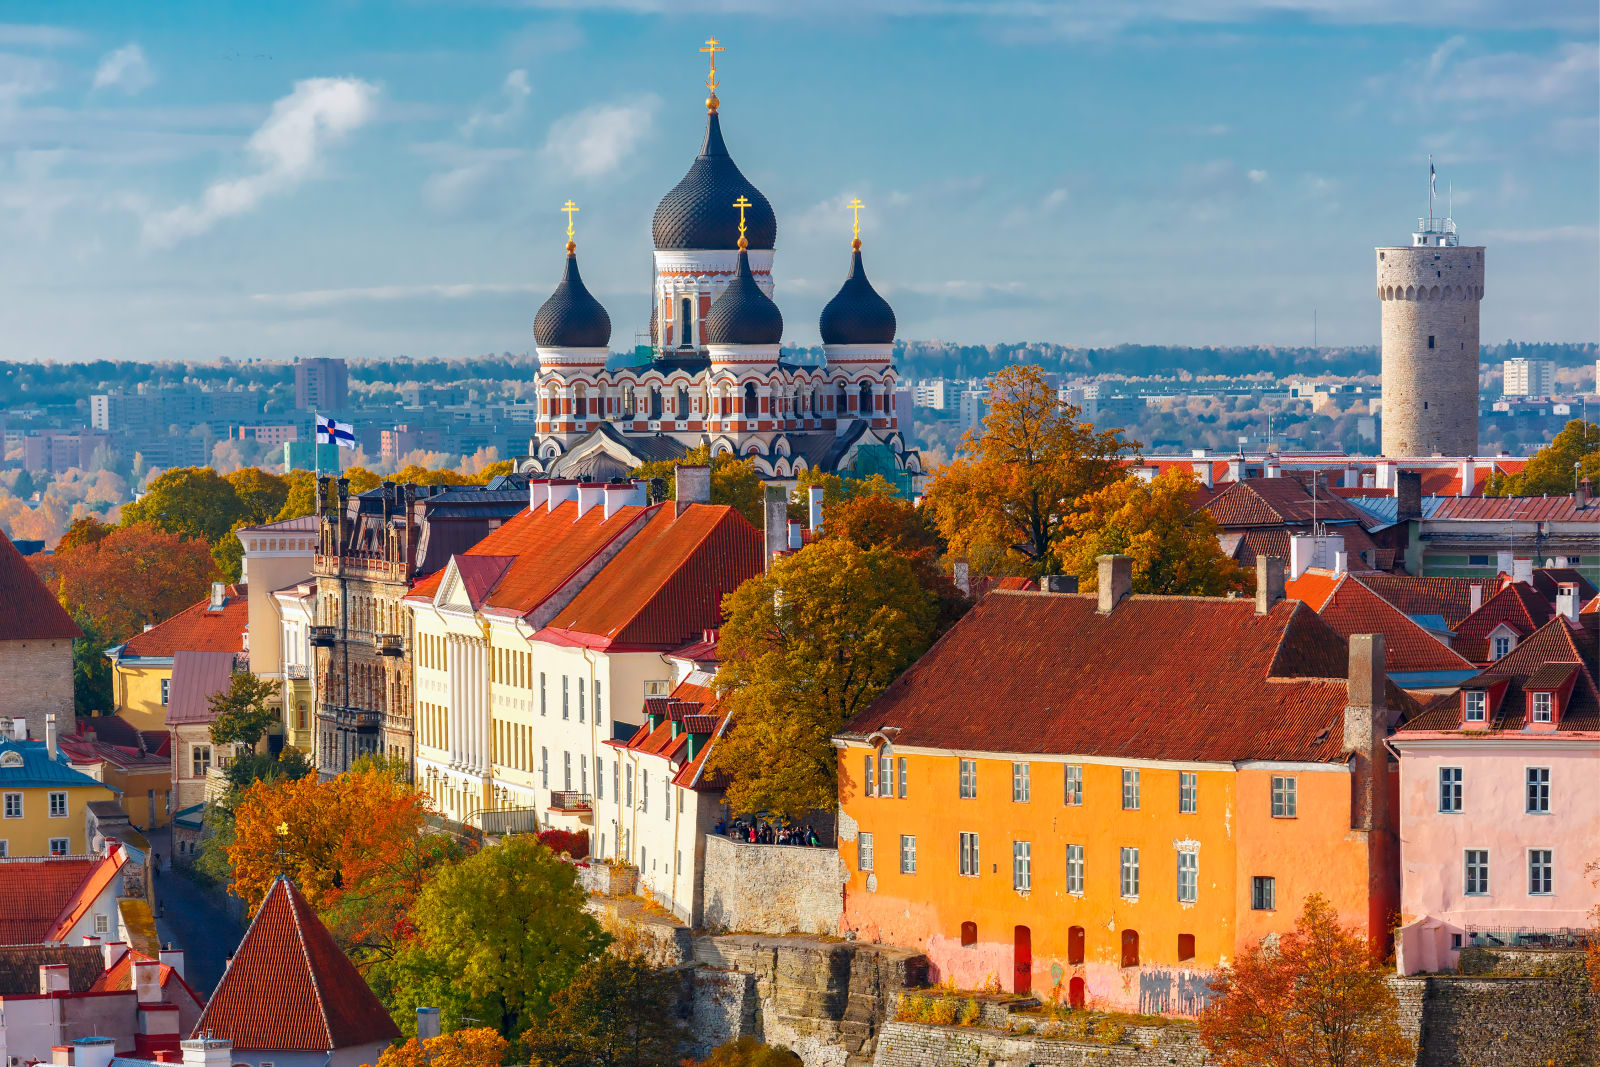 Scenic view of Tallinn, Estonia